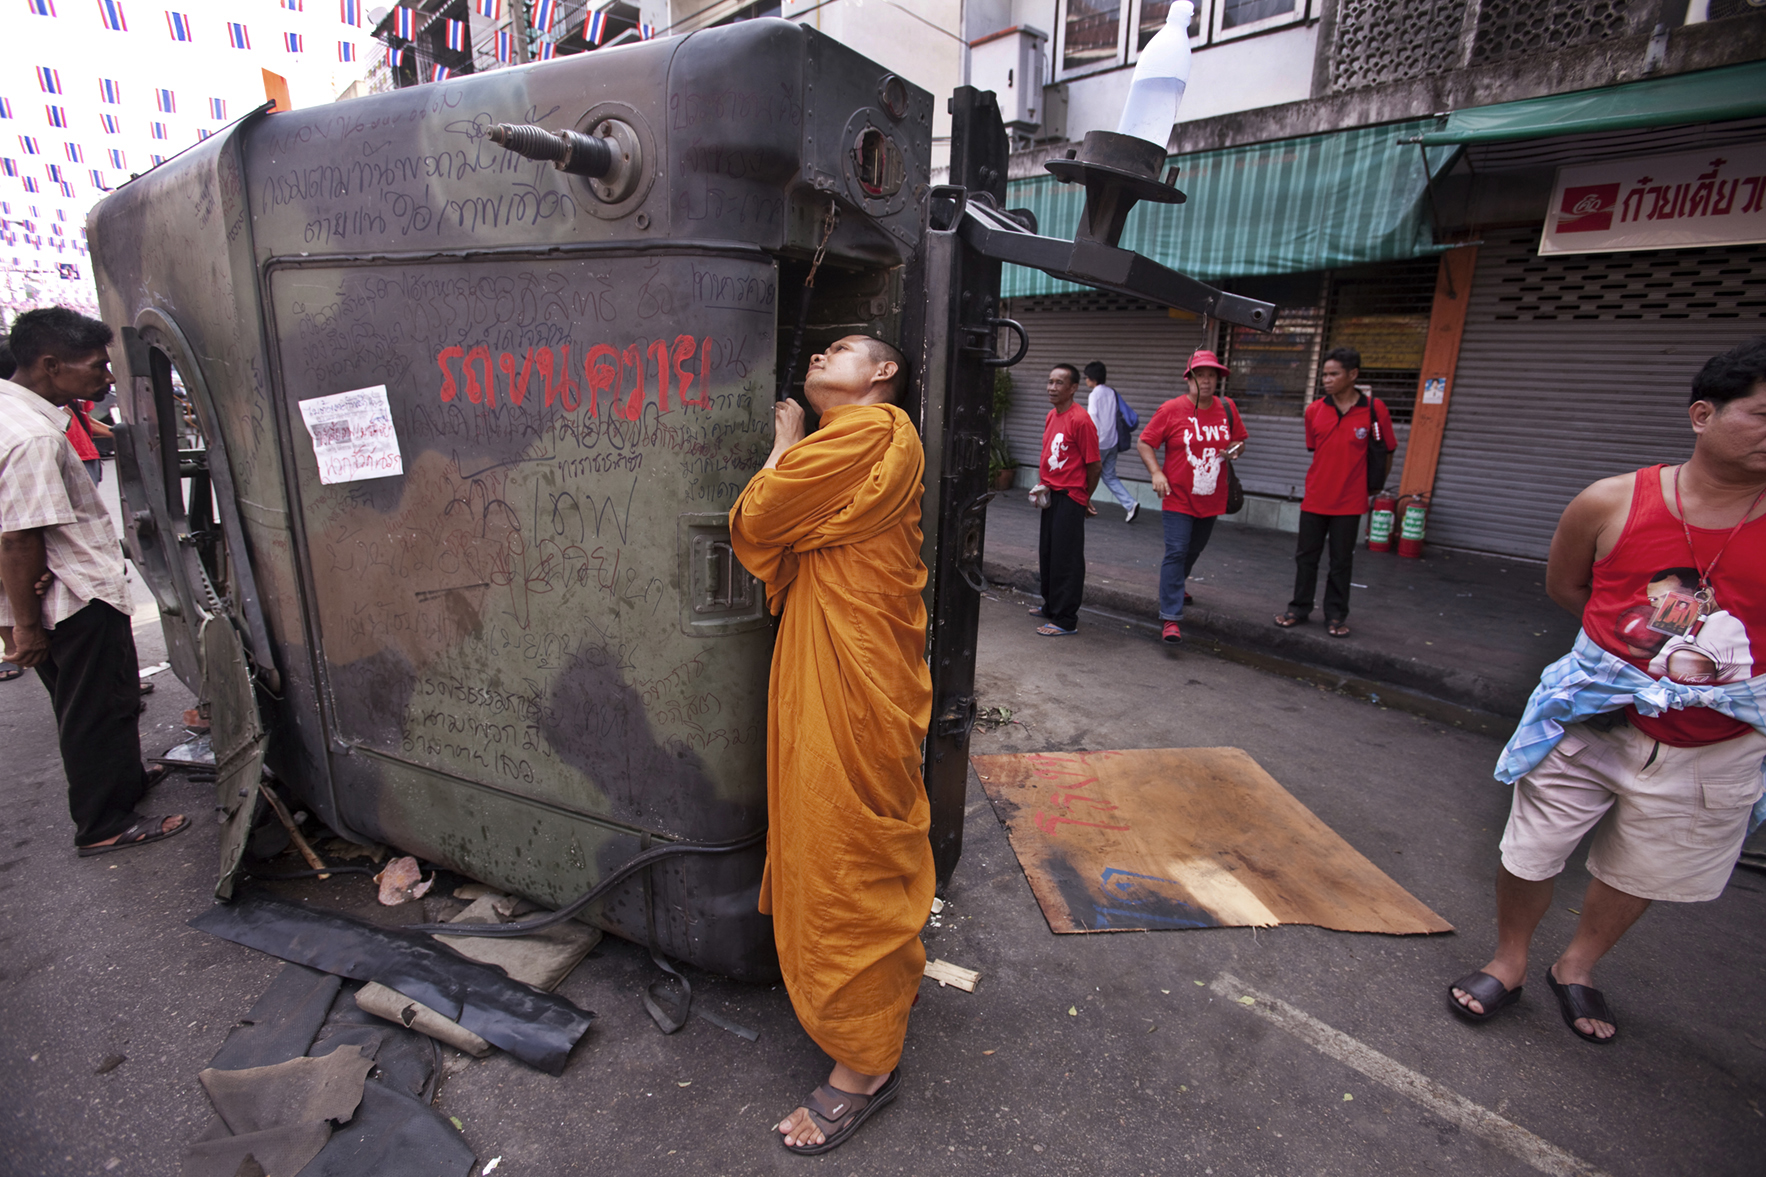 """In 2010 in Bangkok at least 90 people died and more than 2,000 were wounded in clashes between the """"Red Shirts"""" and the Thai military. In This Photograph: A Monk surveys a destroyed Thai Army APC near Khaosan Rd, Bangkok."""